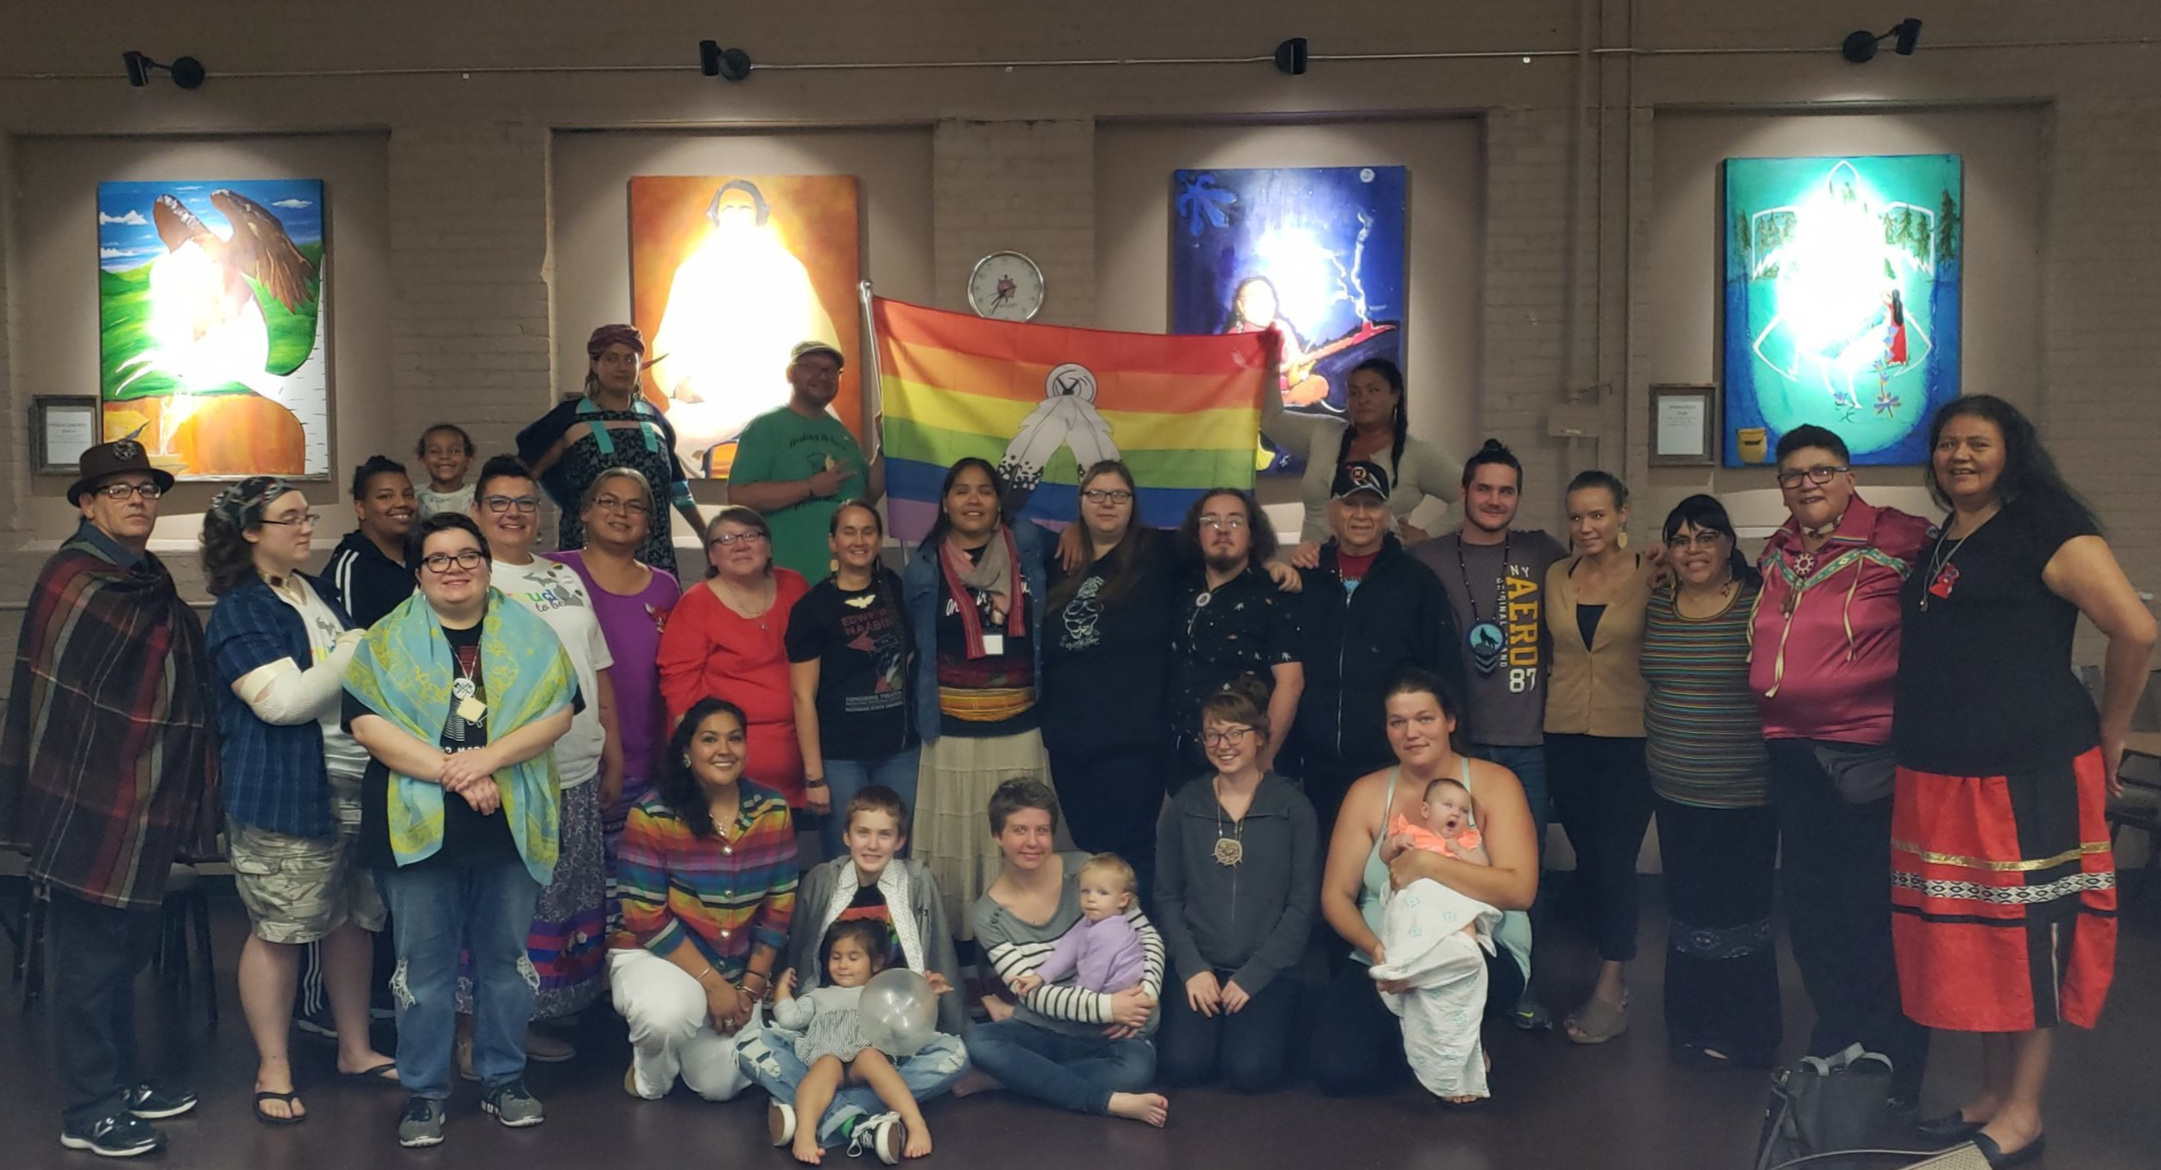 Photo: Our first ever Two-Spirit Healing Stories, Grand Rapids, MI, September 2019. We had 13 phenomenally Indigenous Story Sharers and 60 supportive event attendee's. Story Sharers represented many Native Nations including: Anishinaabe (all Three Fires - Ojibway, Odawa & Potawatomi), Oglala Lakota, Blackfoot, Okanagan and Shuswap First Nation.